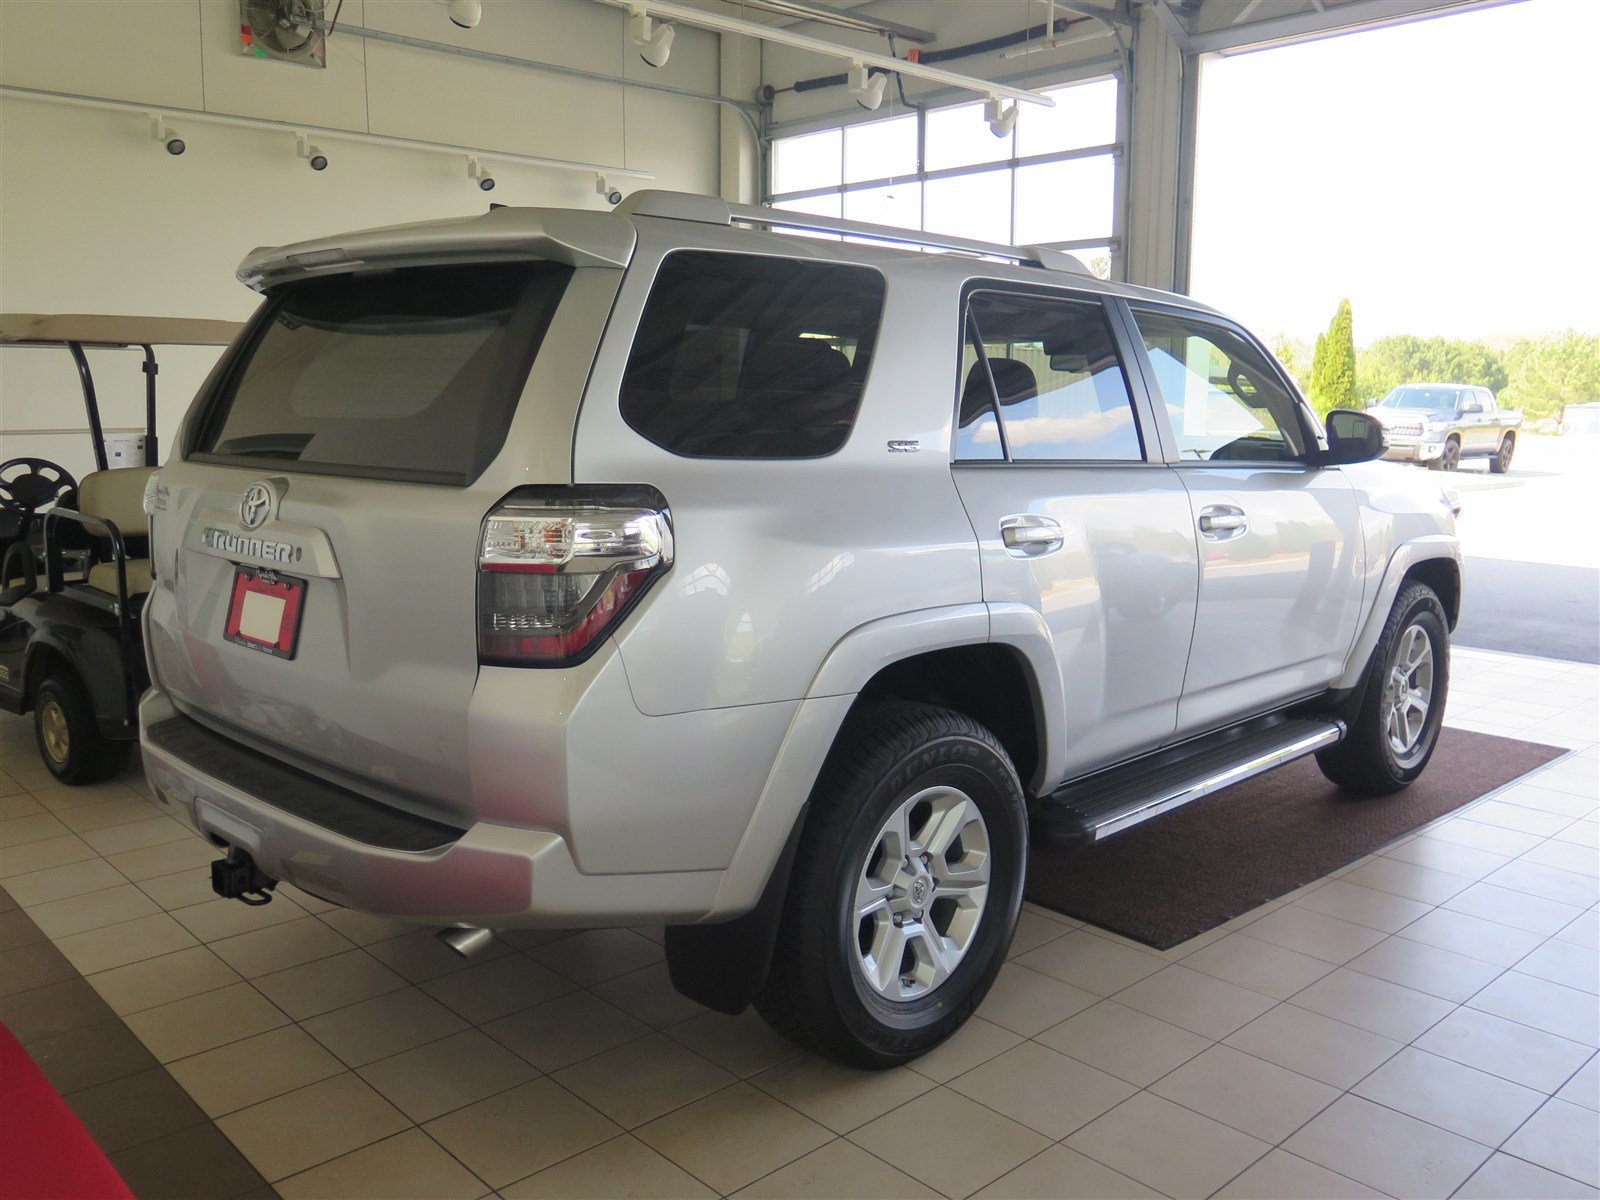 d1fa9a3302a5d3bd2b7d84acffcdd975 Great Description About Used toyota 4runner for Sale